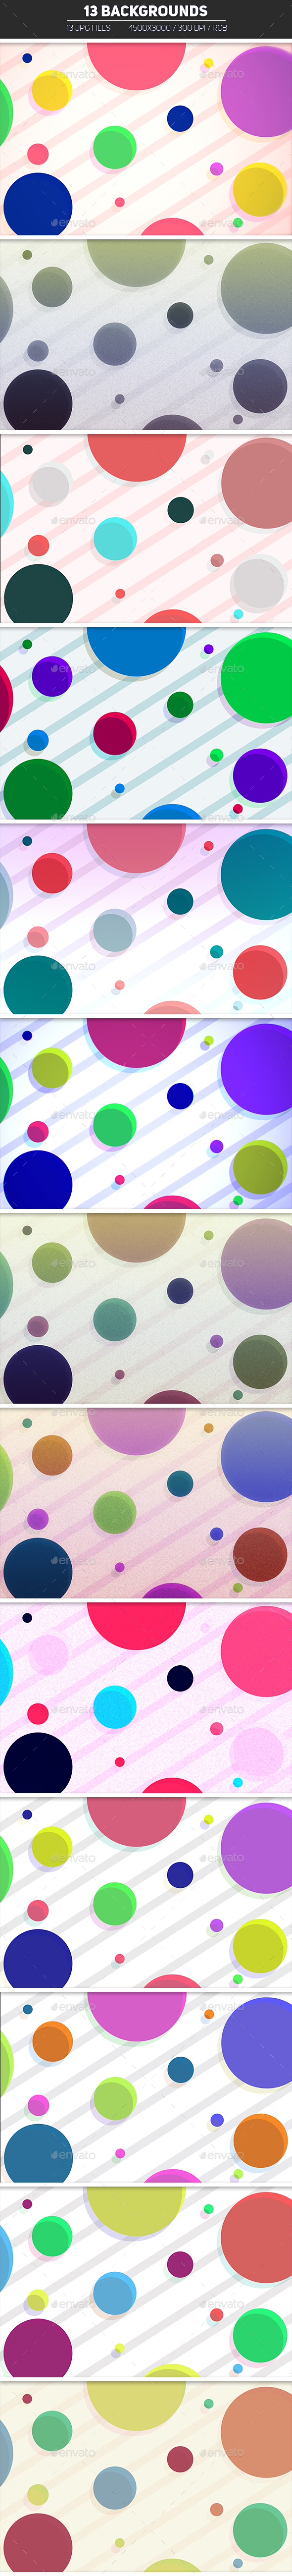 Colorful Rounded Backgrounds - Miscellaneous Backgrounds